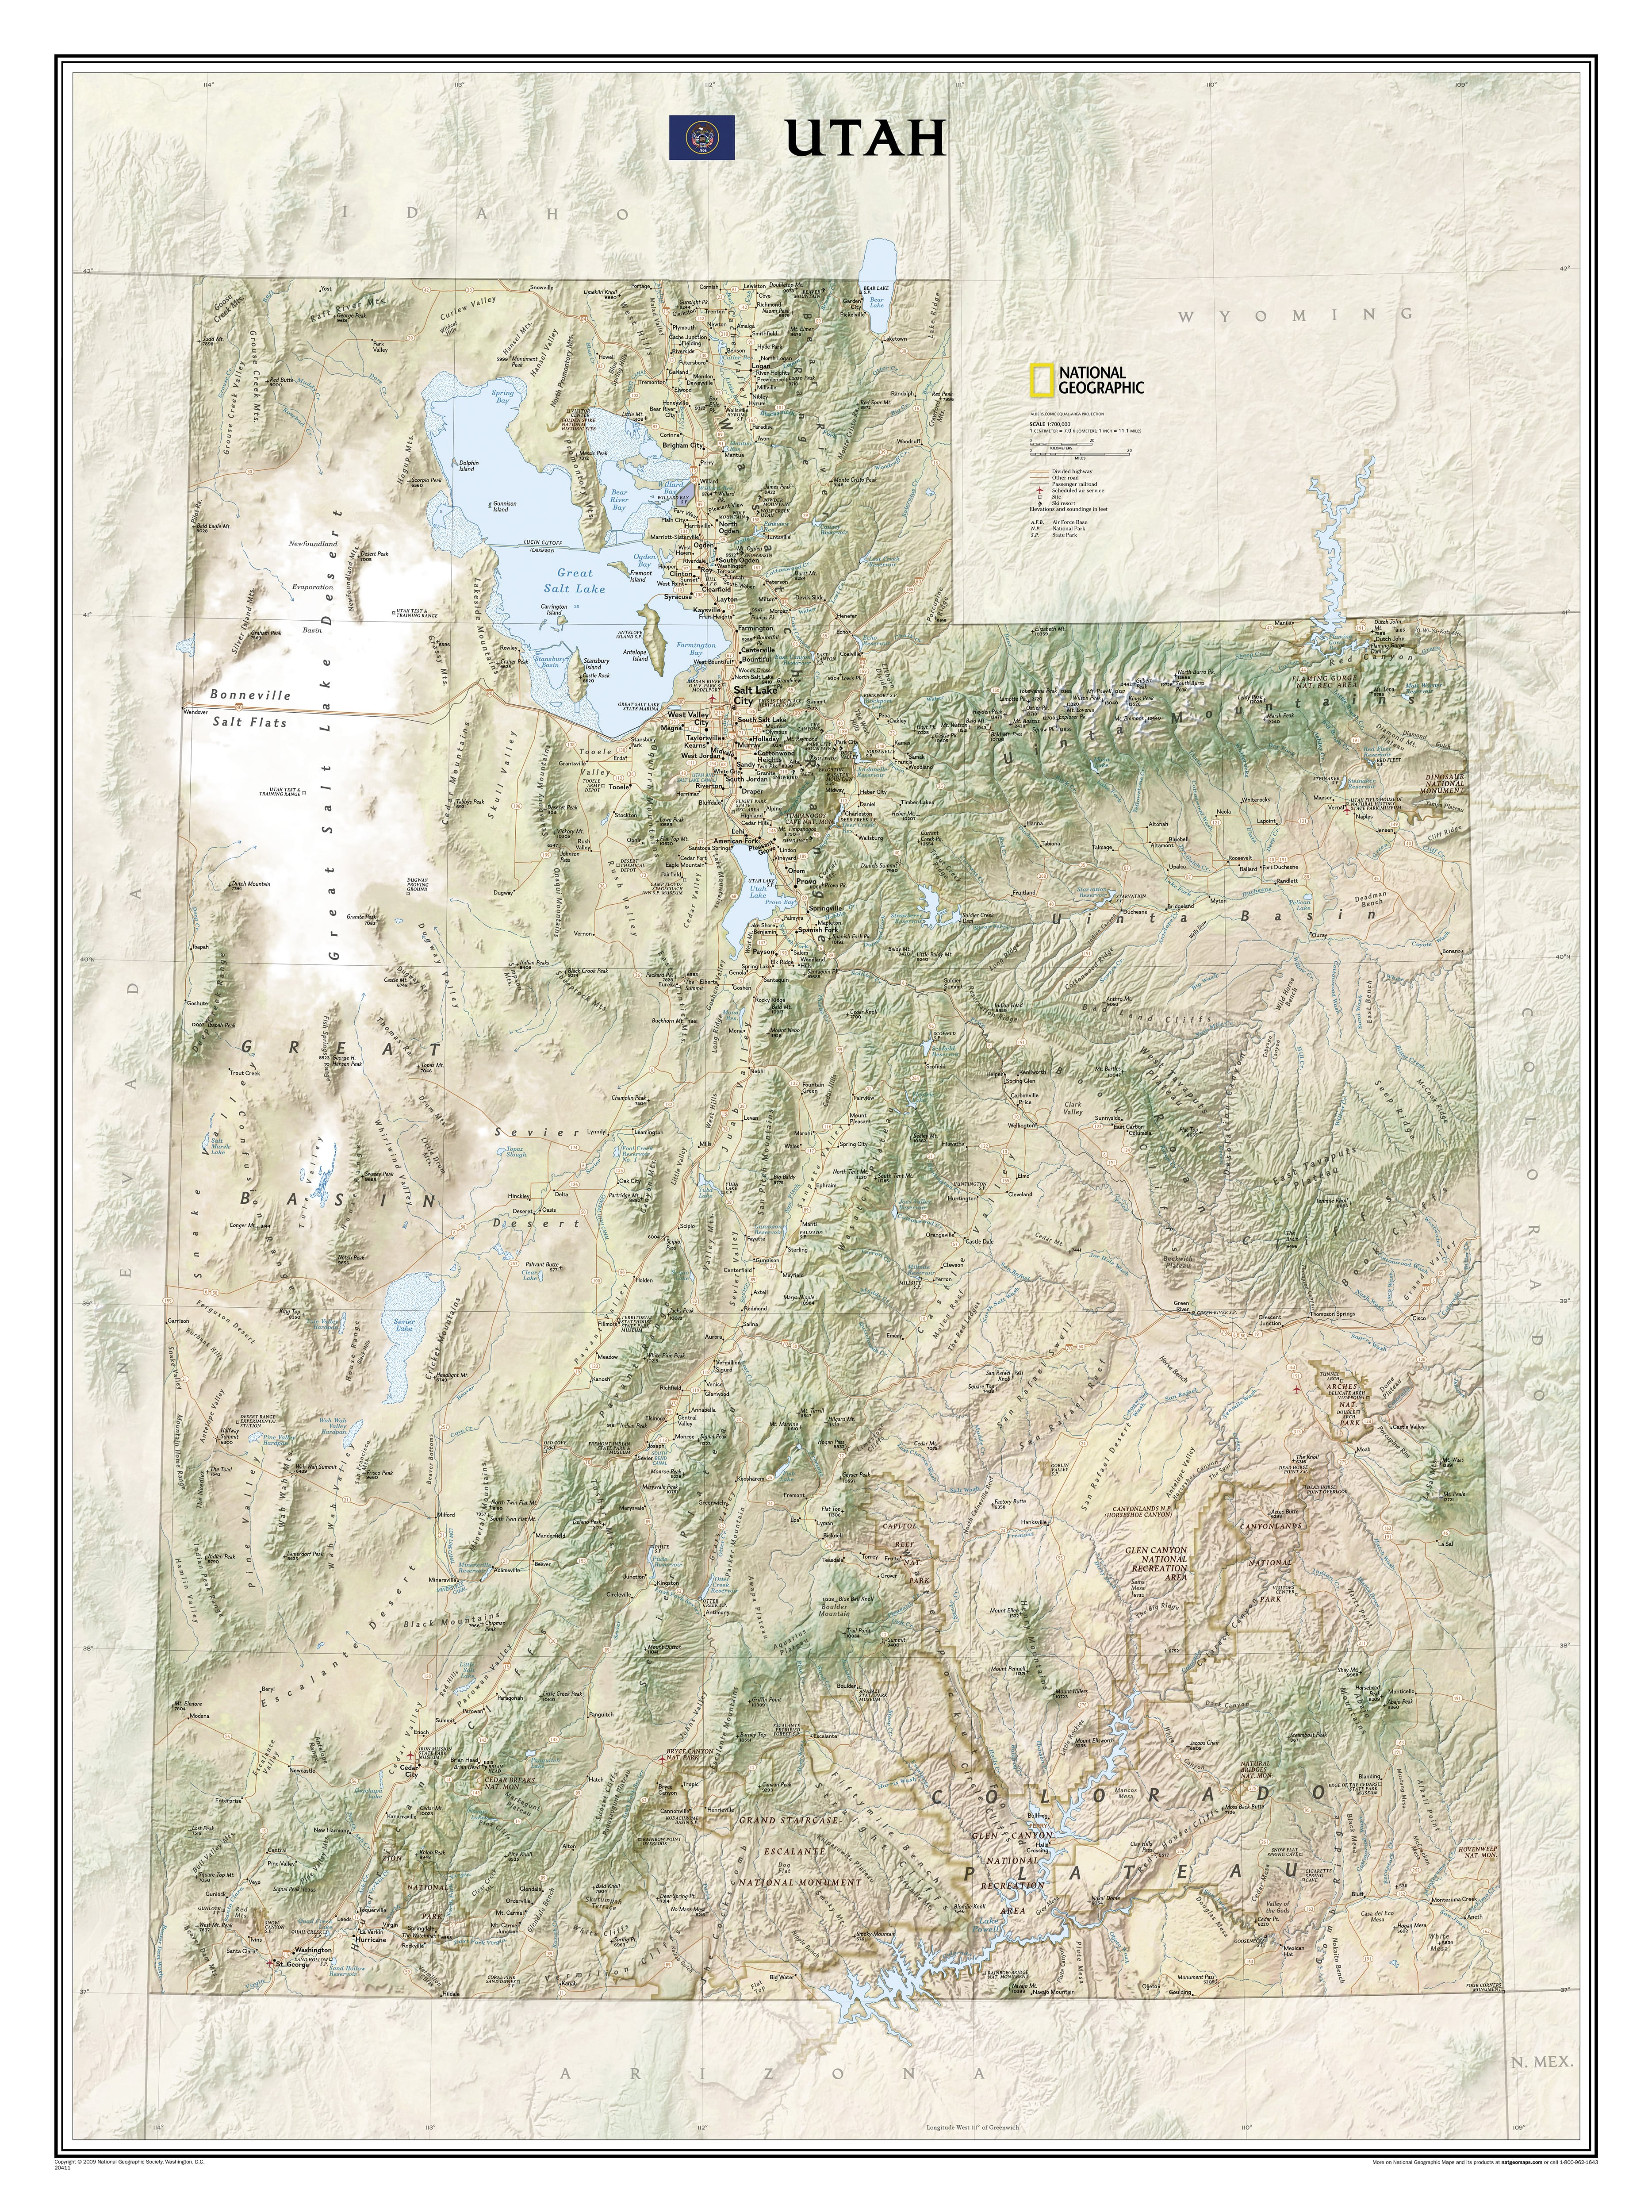 Utah Wall Map Countries Regions Maps Wall Maps - Laminated state wall maps